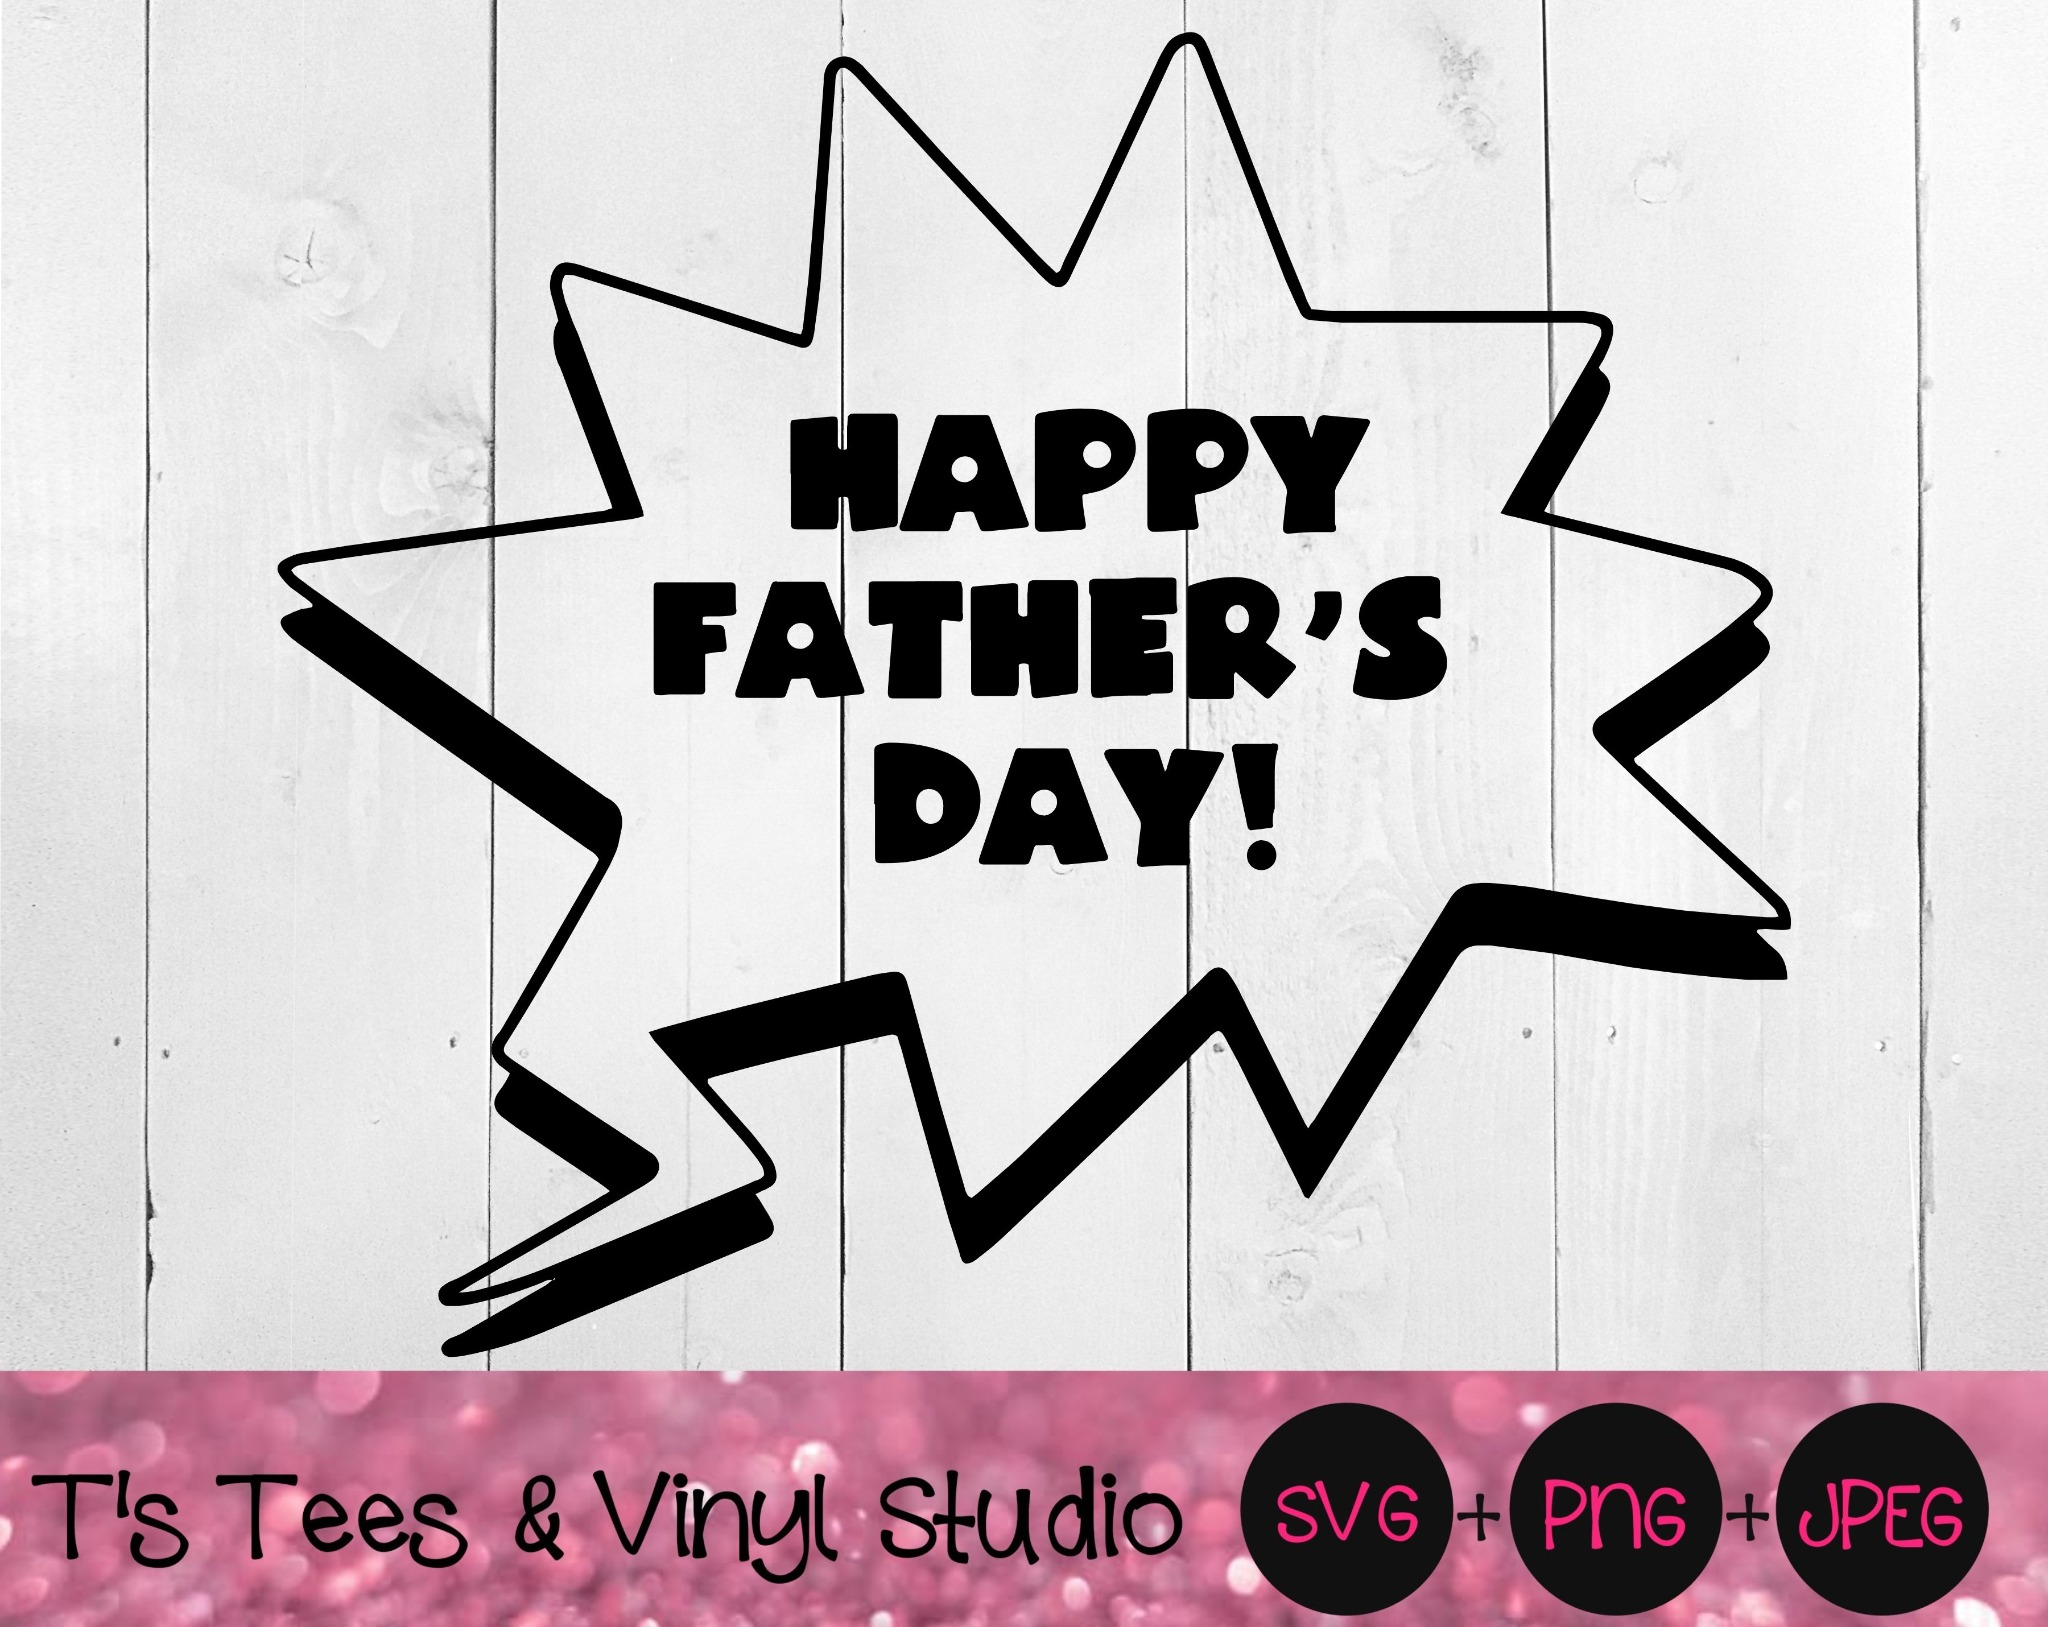 Dad Svg, Father Svg, Comic Svg, Happy Father's Day Svg, Poppa Svg, Papa Svg, Daddy Svg, Dad Png, Fat